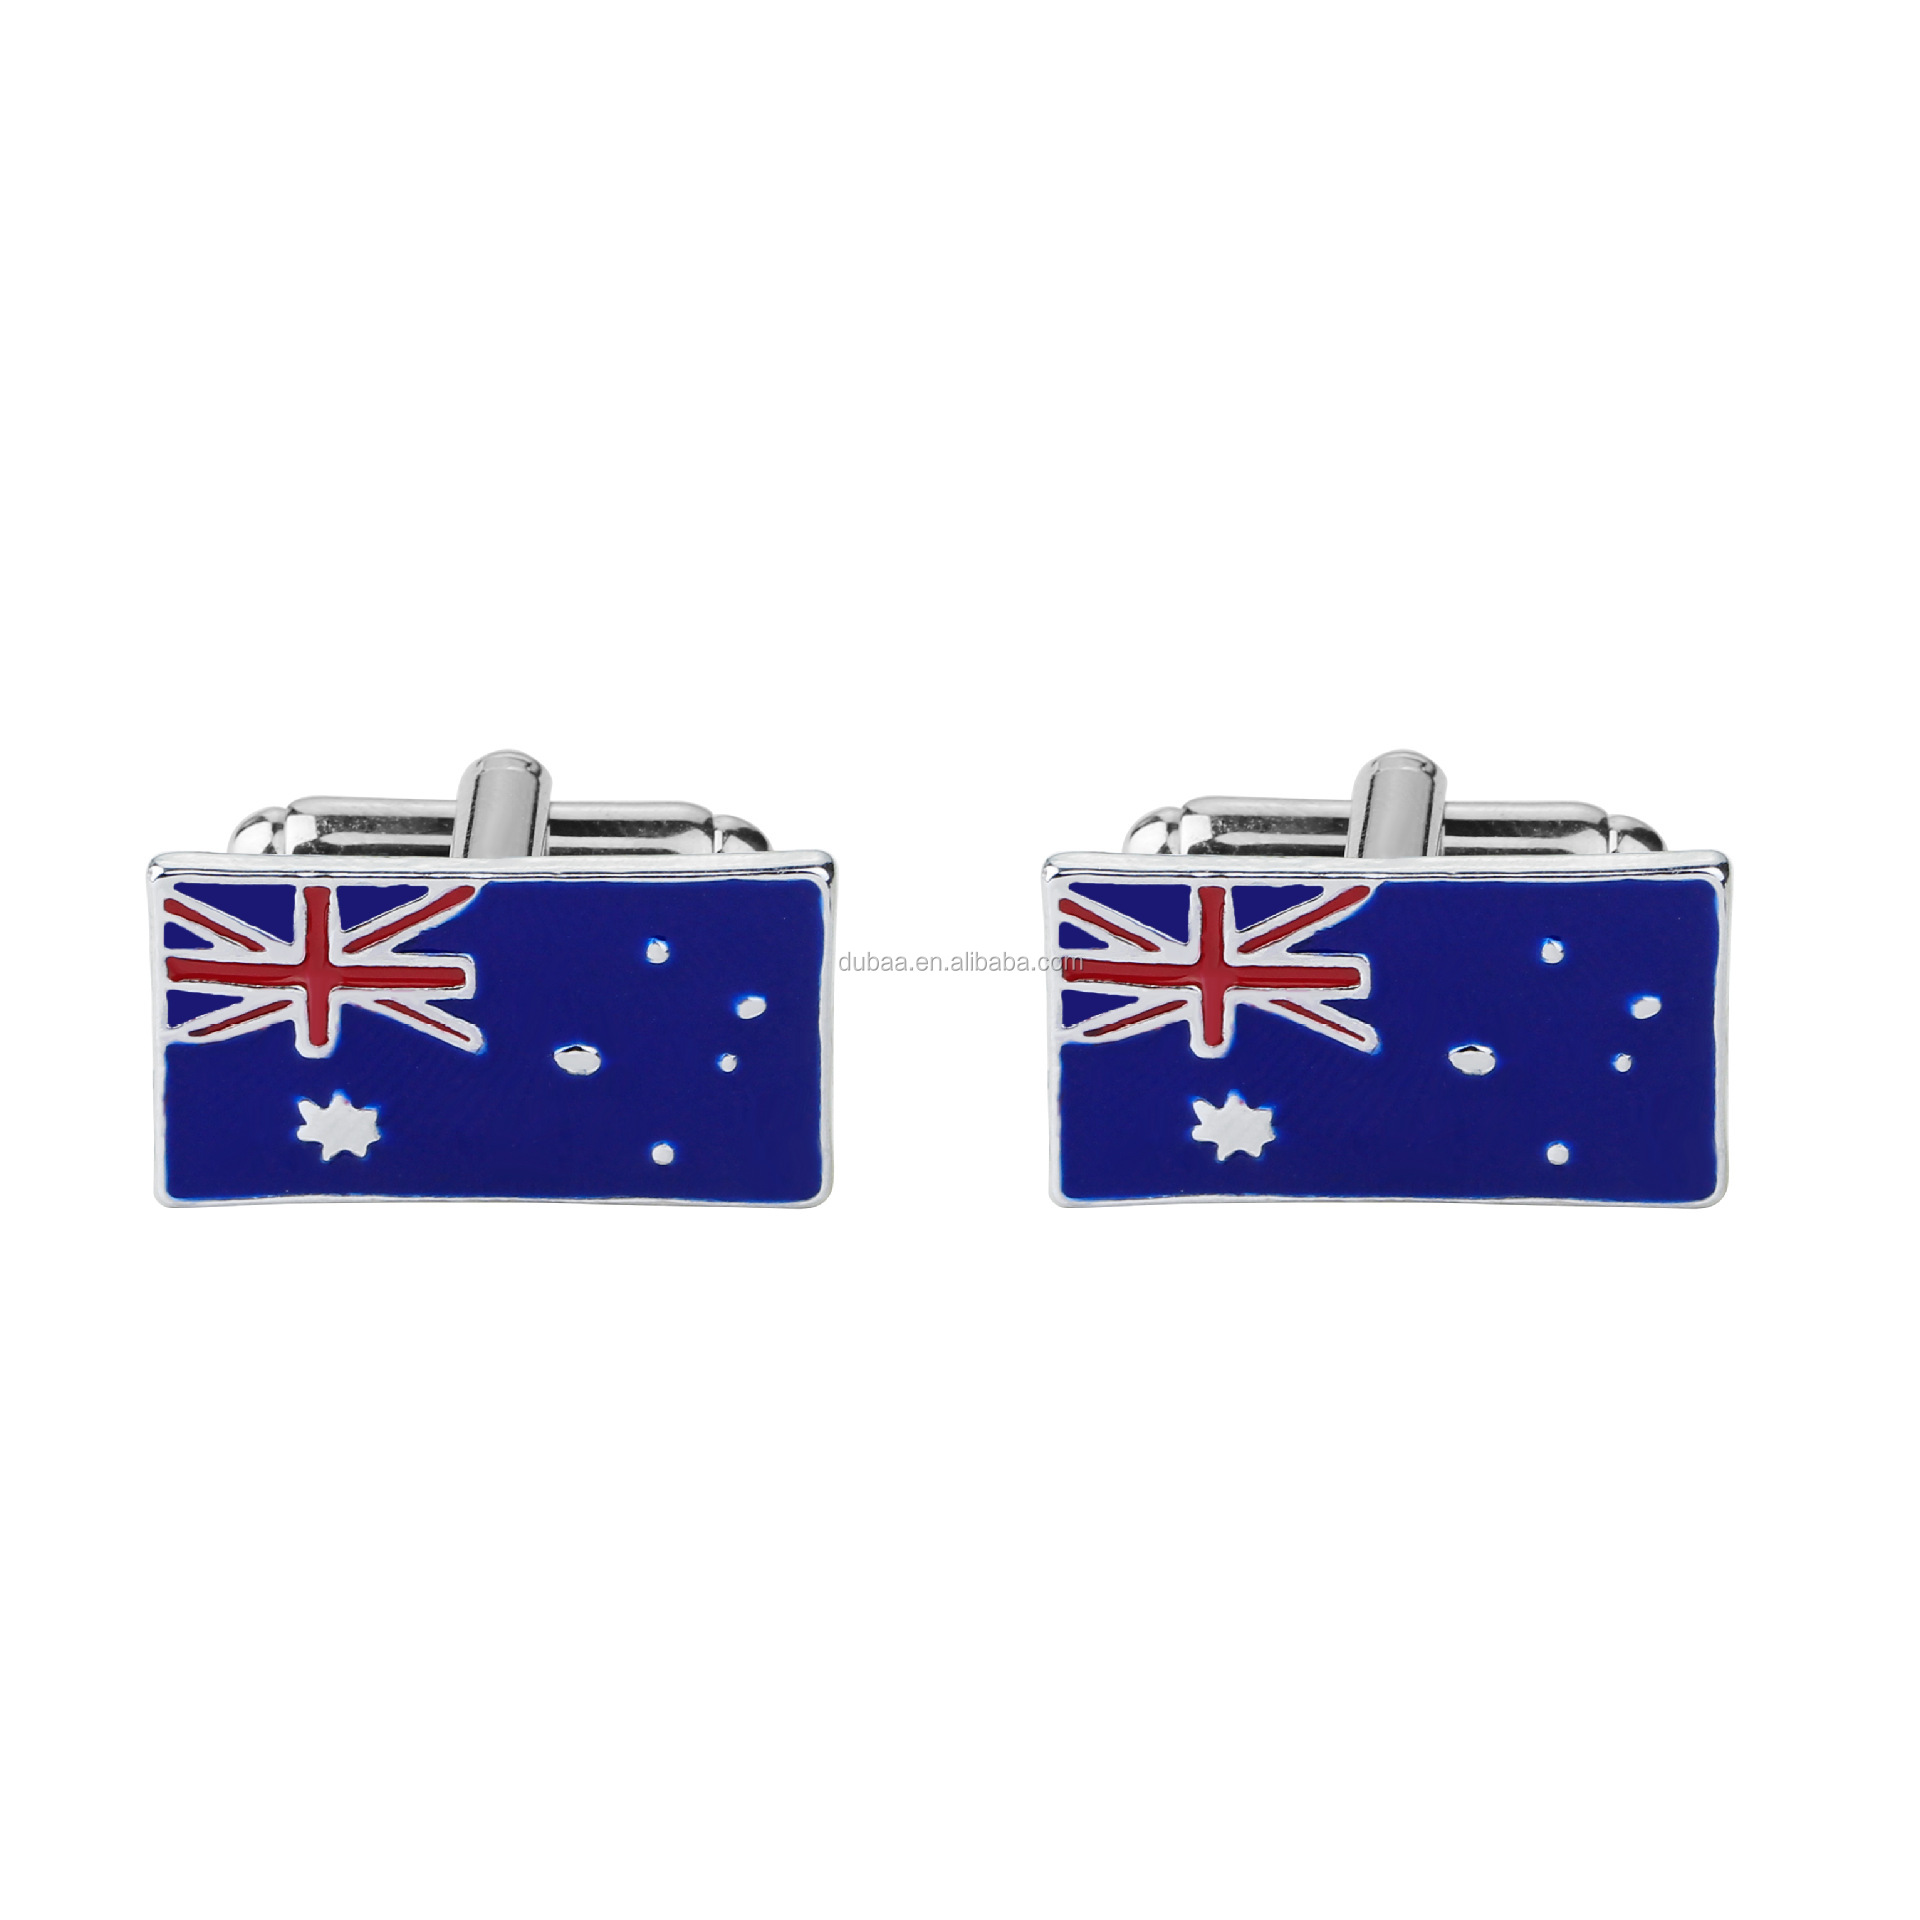 Men's Novelty Cufflinks - Australian Flag Design Executive Cufflinks Unique Cuff Links